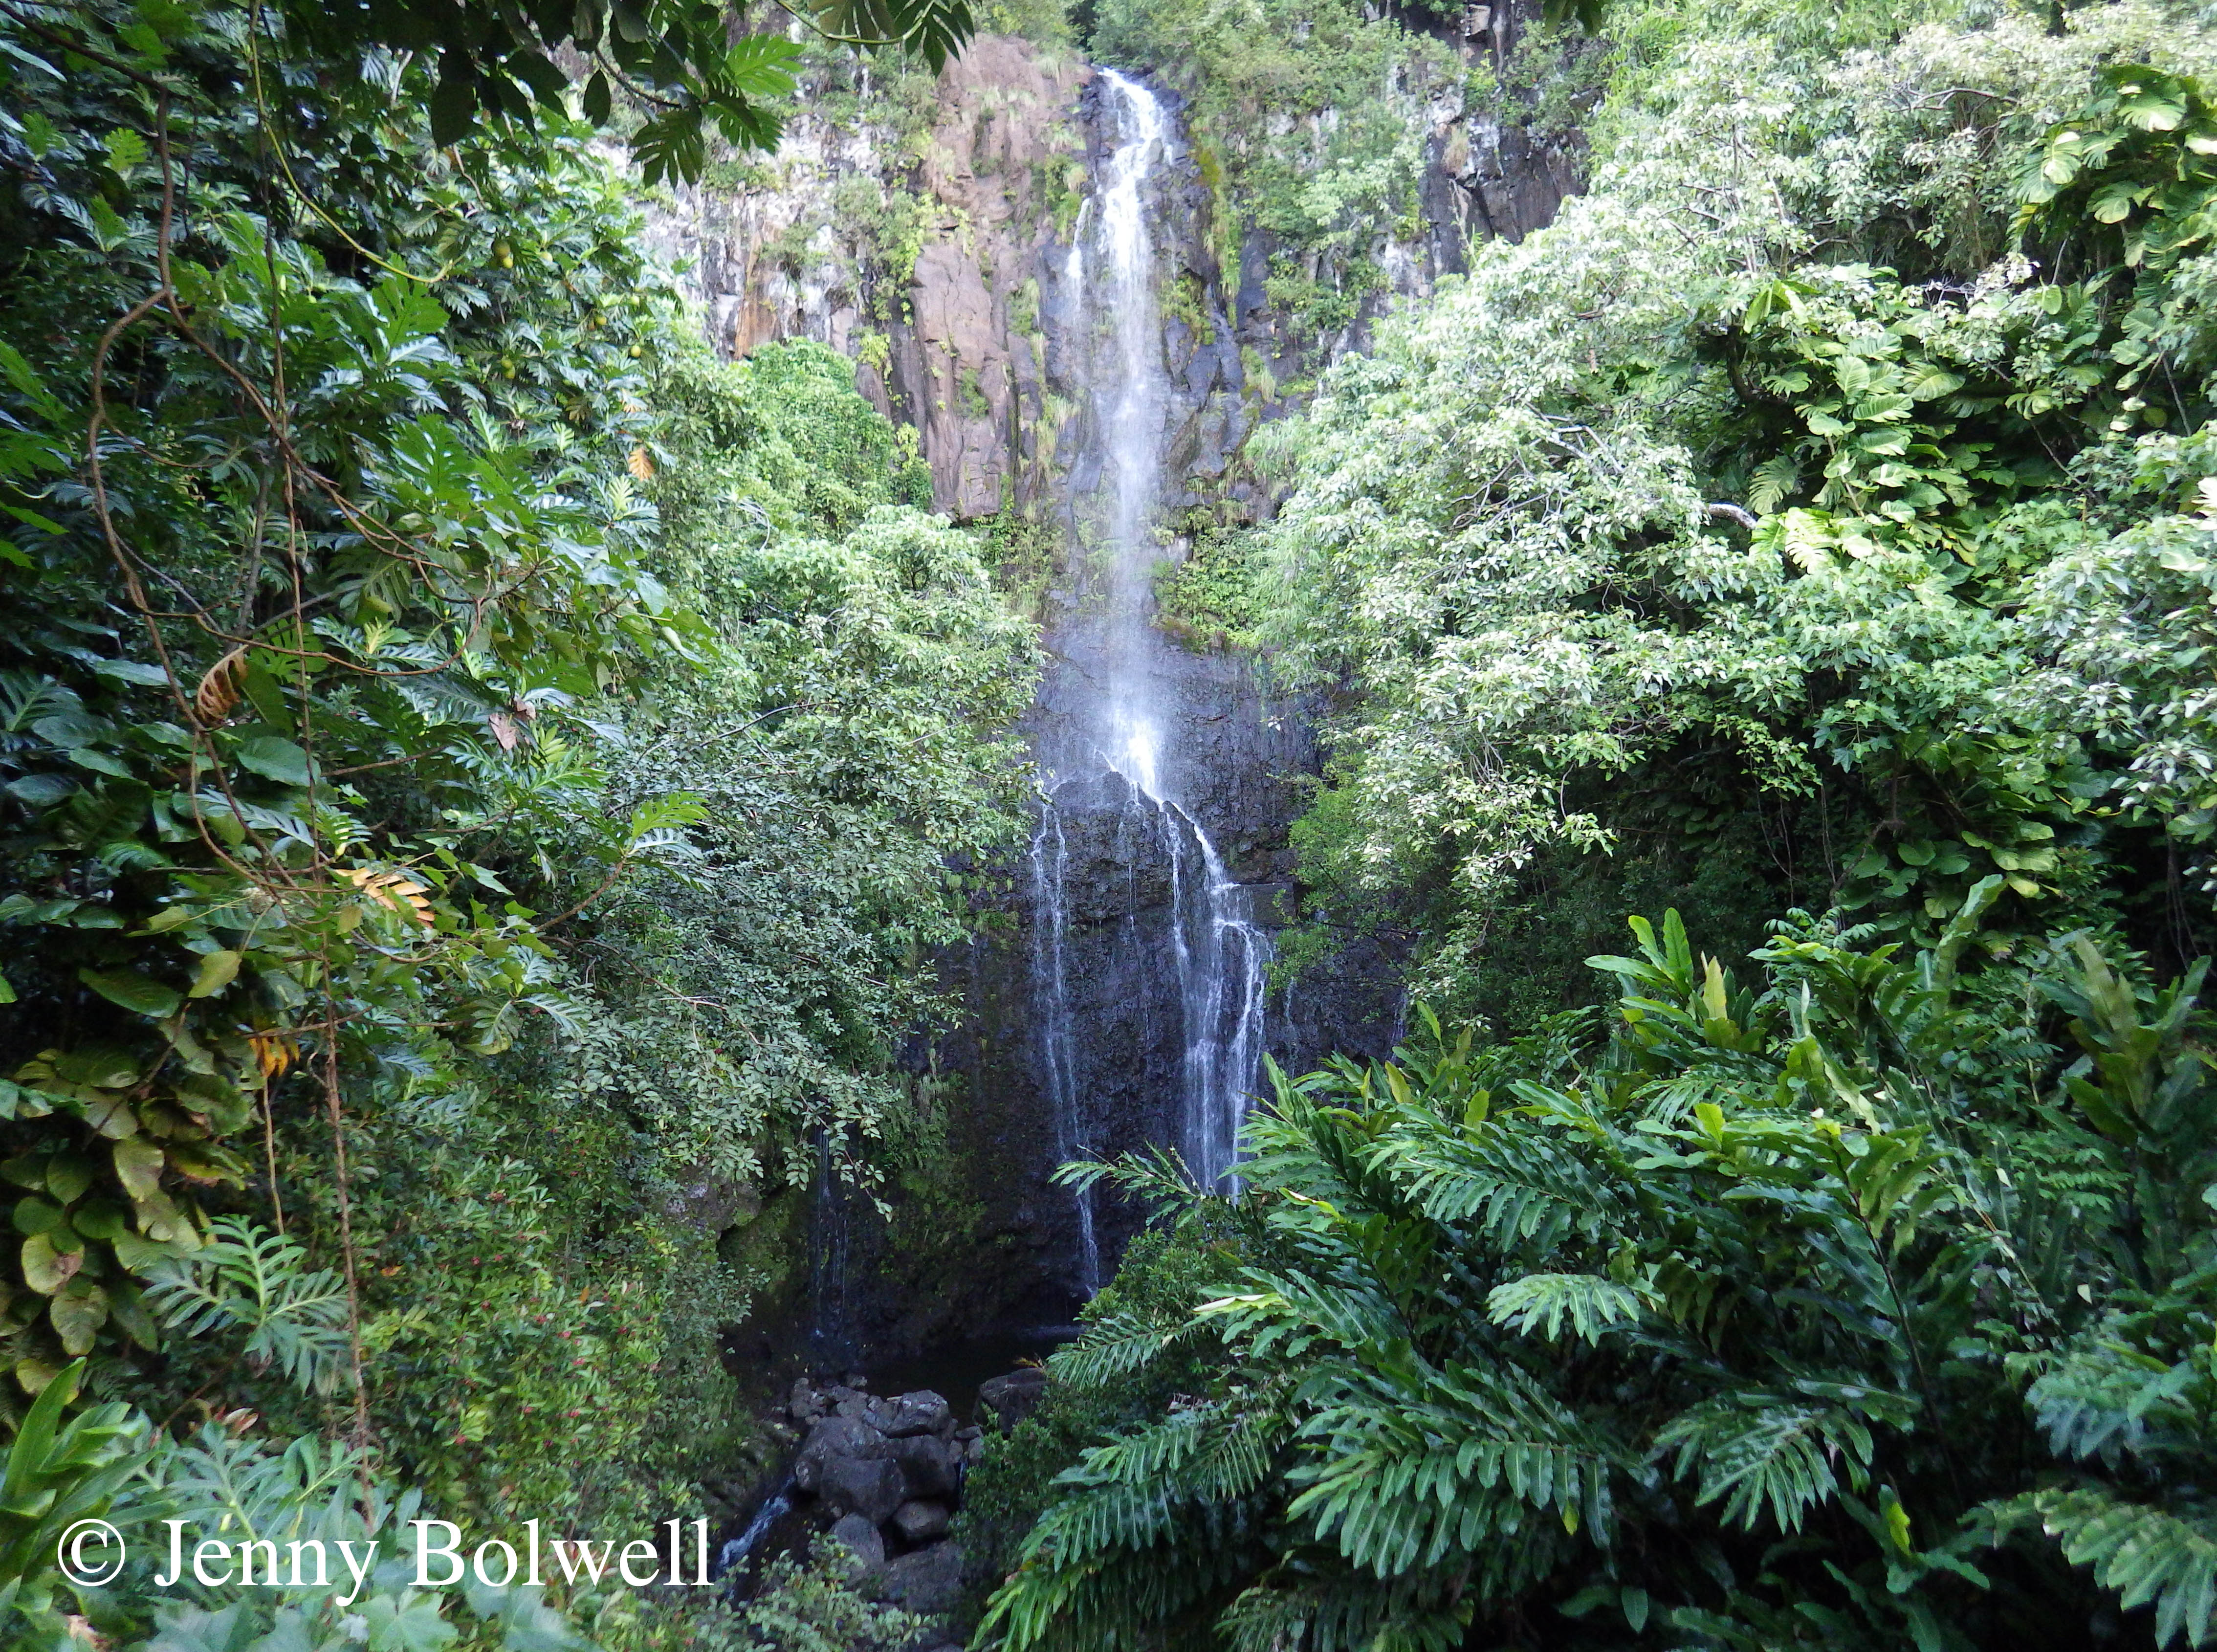 The real Hawaii - the exceptional beauty of waterfalls and forests.